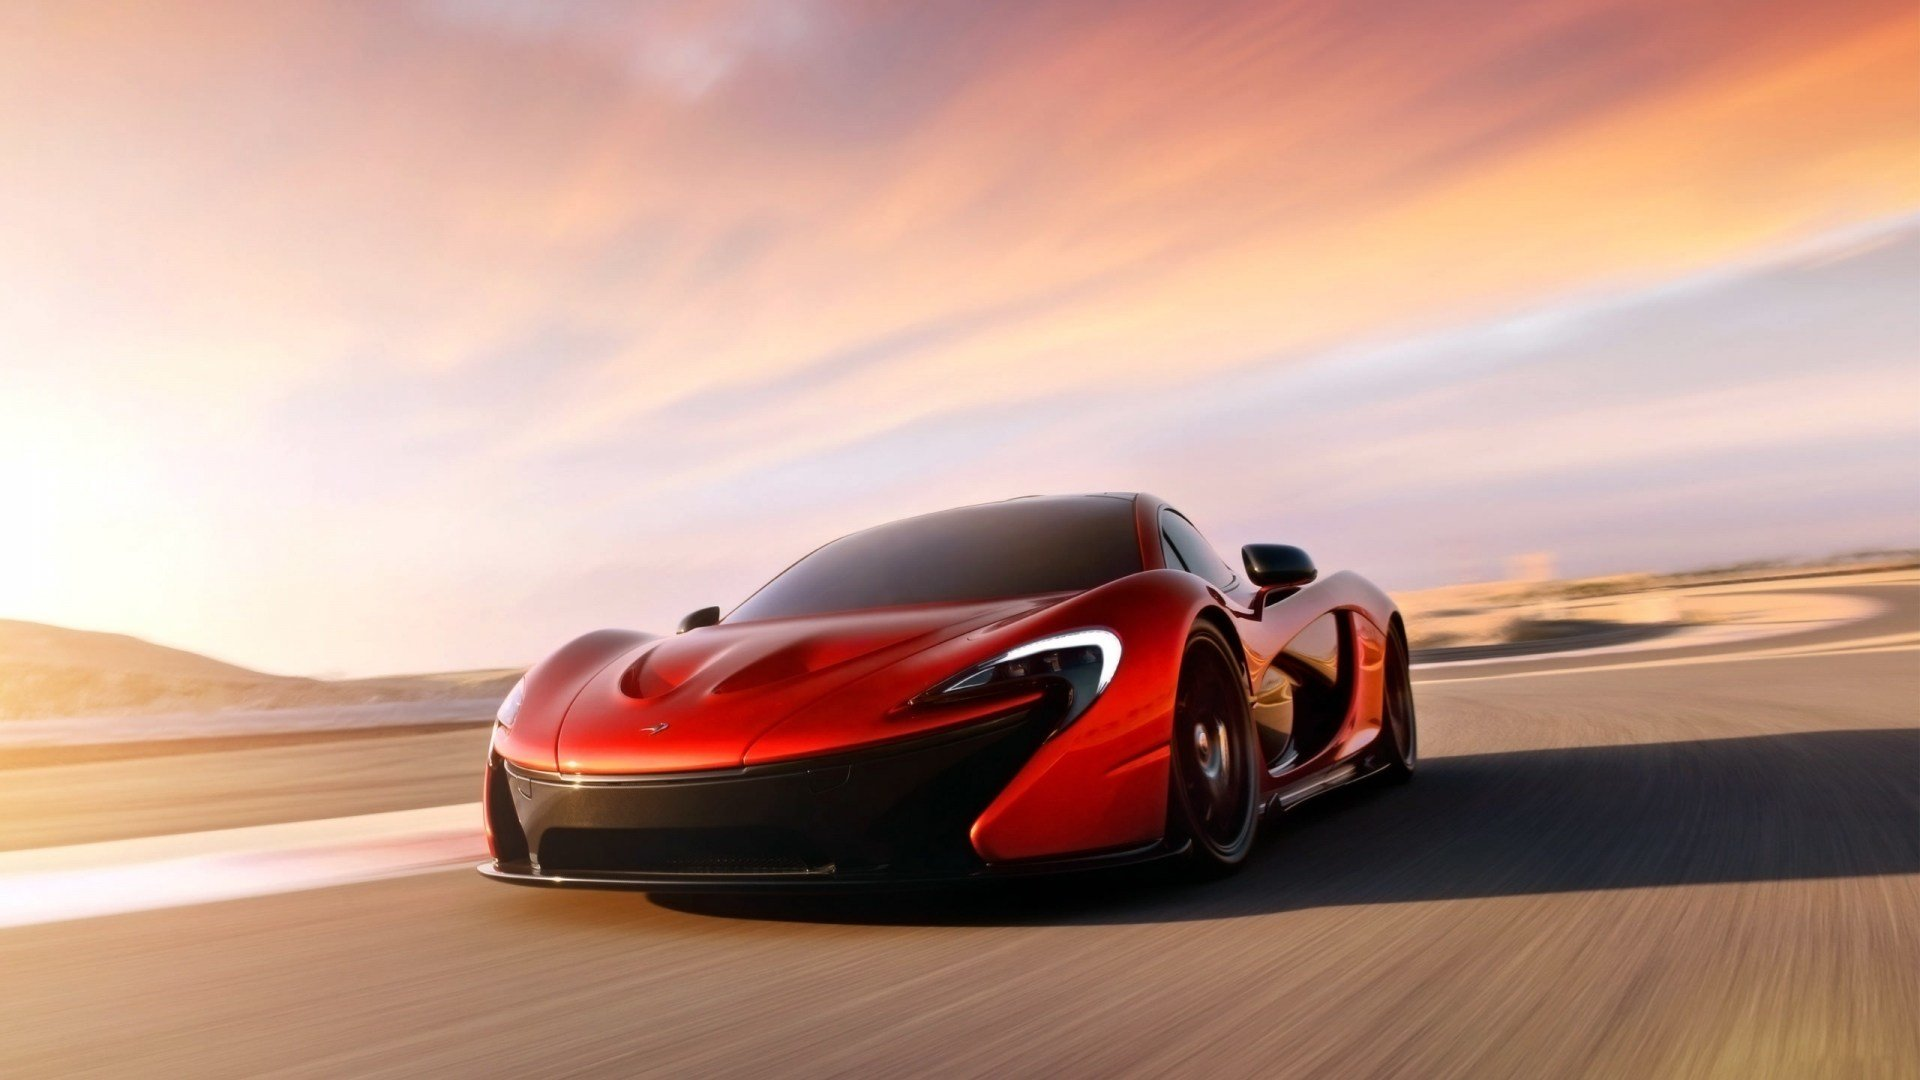 Latest Mclaren P1 Concept Red Desktop Wallpaper Free Download